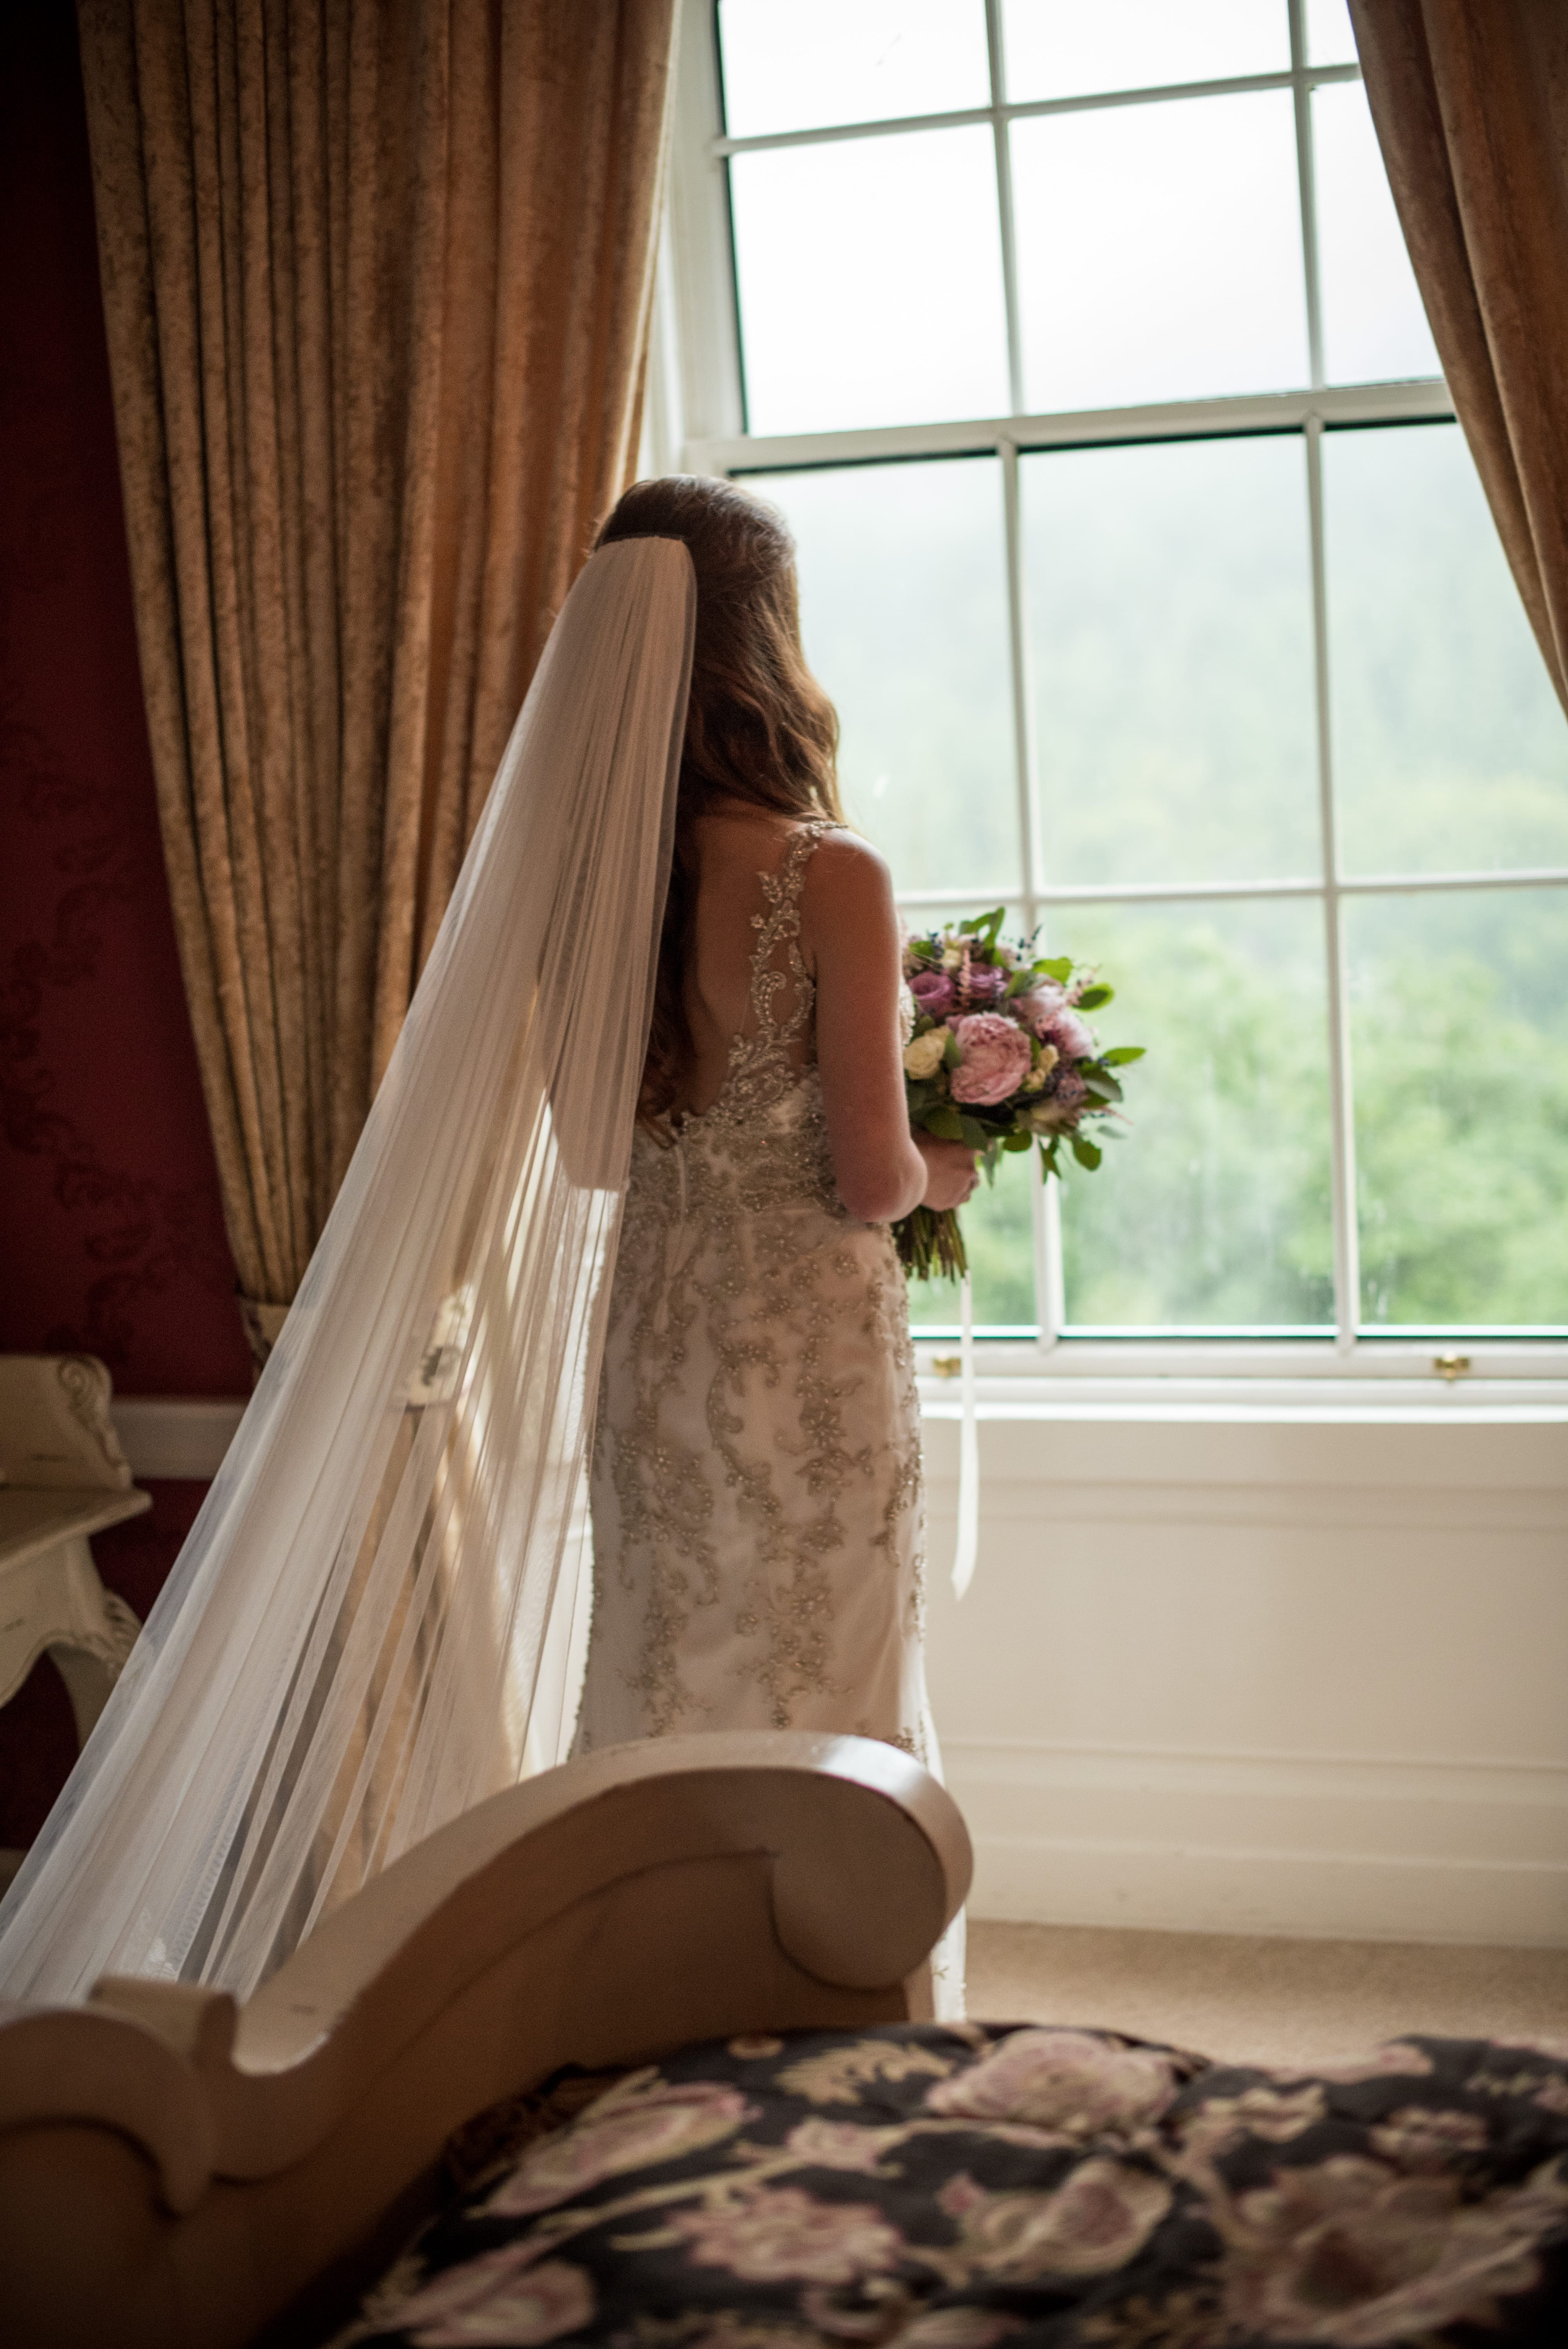 This Intimate Manor Wedding is the Ideal Balance of Soft Glamour, Rustic Whimsy, and Classic Elegance. Greer wedding dress by Maggie Sottero.